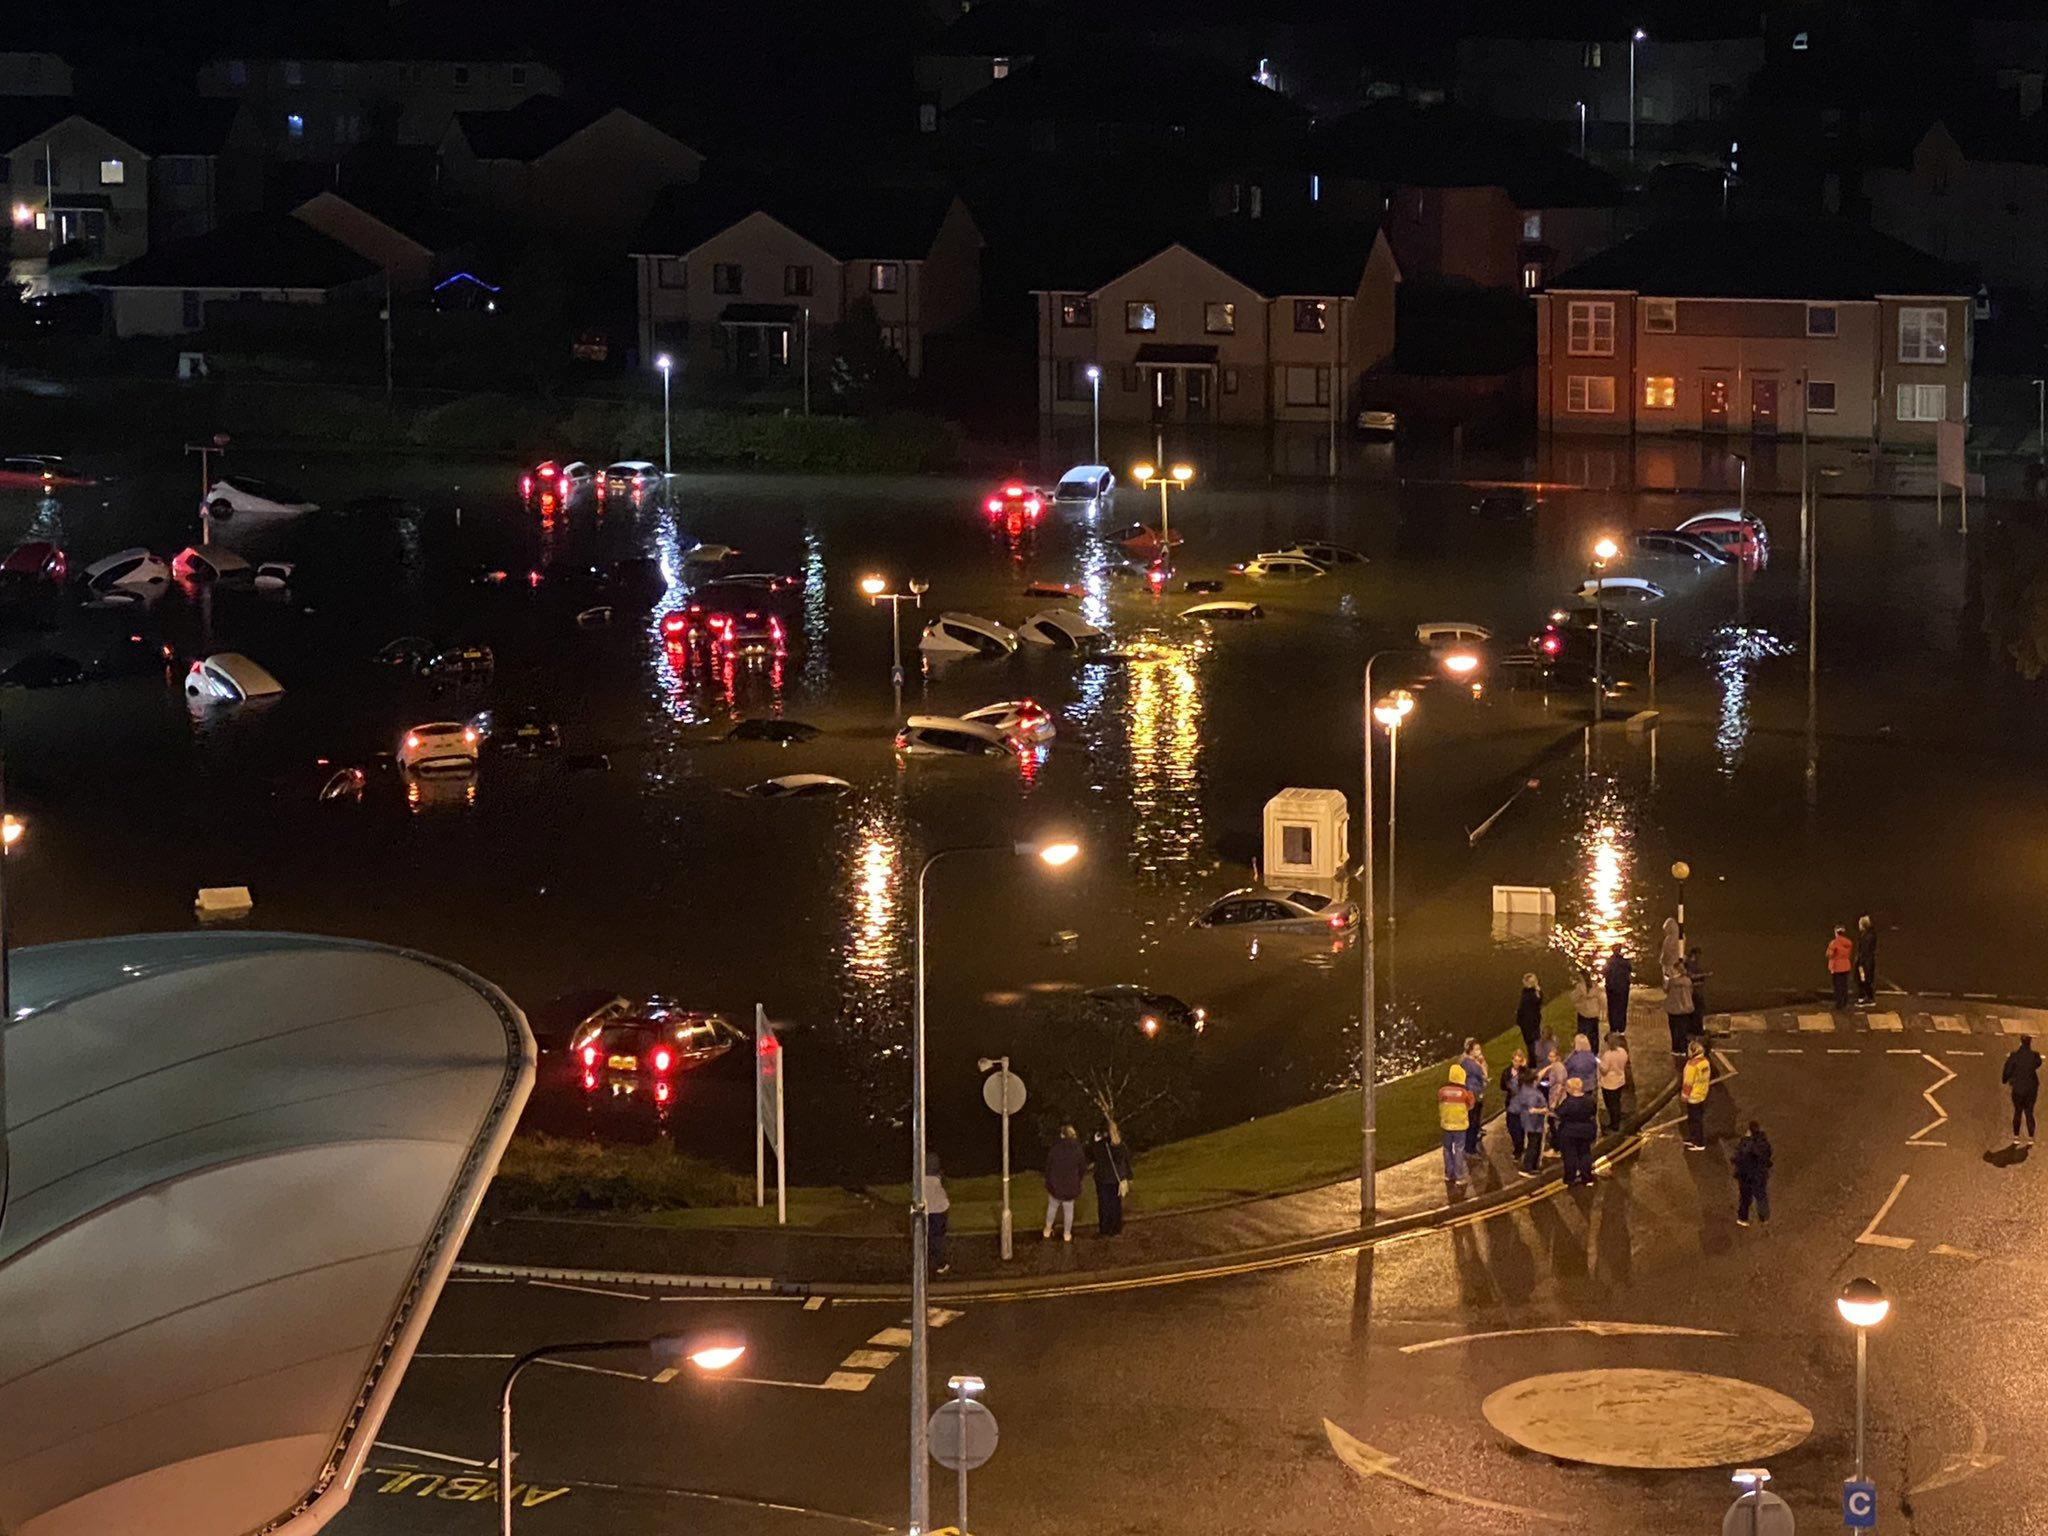 Hospital workers' cars wrecked after flooding following torrential rain in Scotland